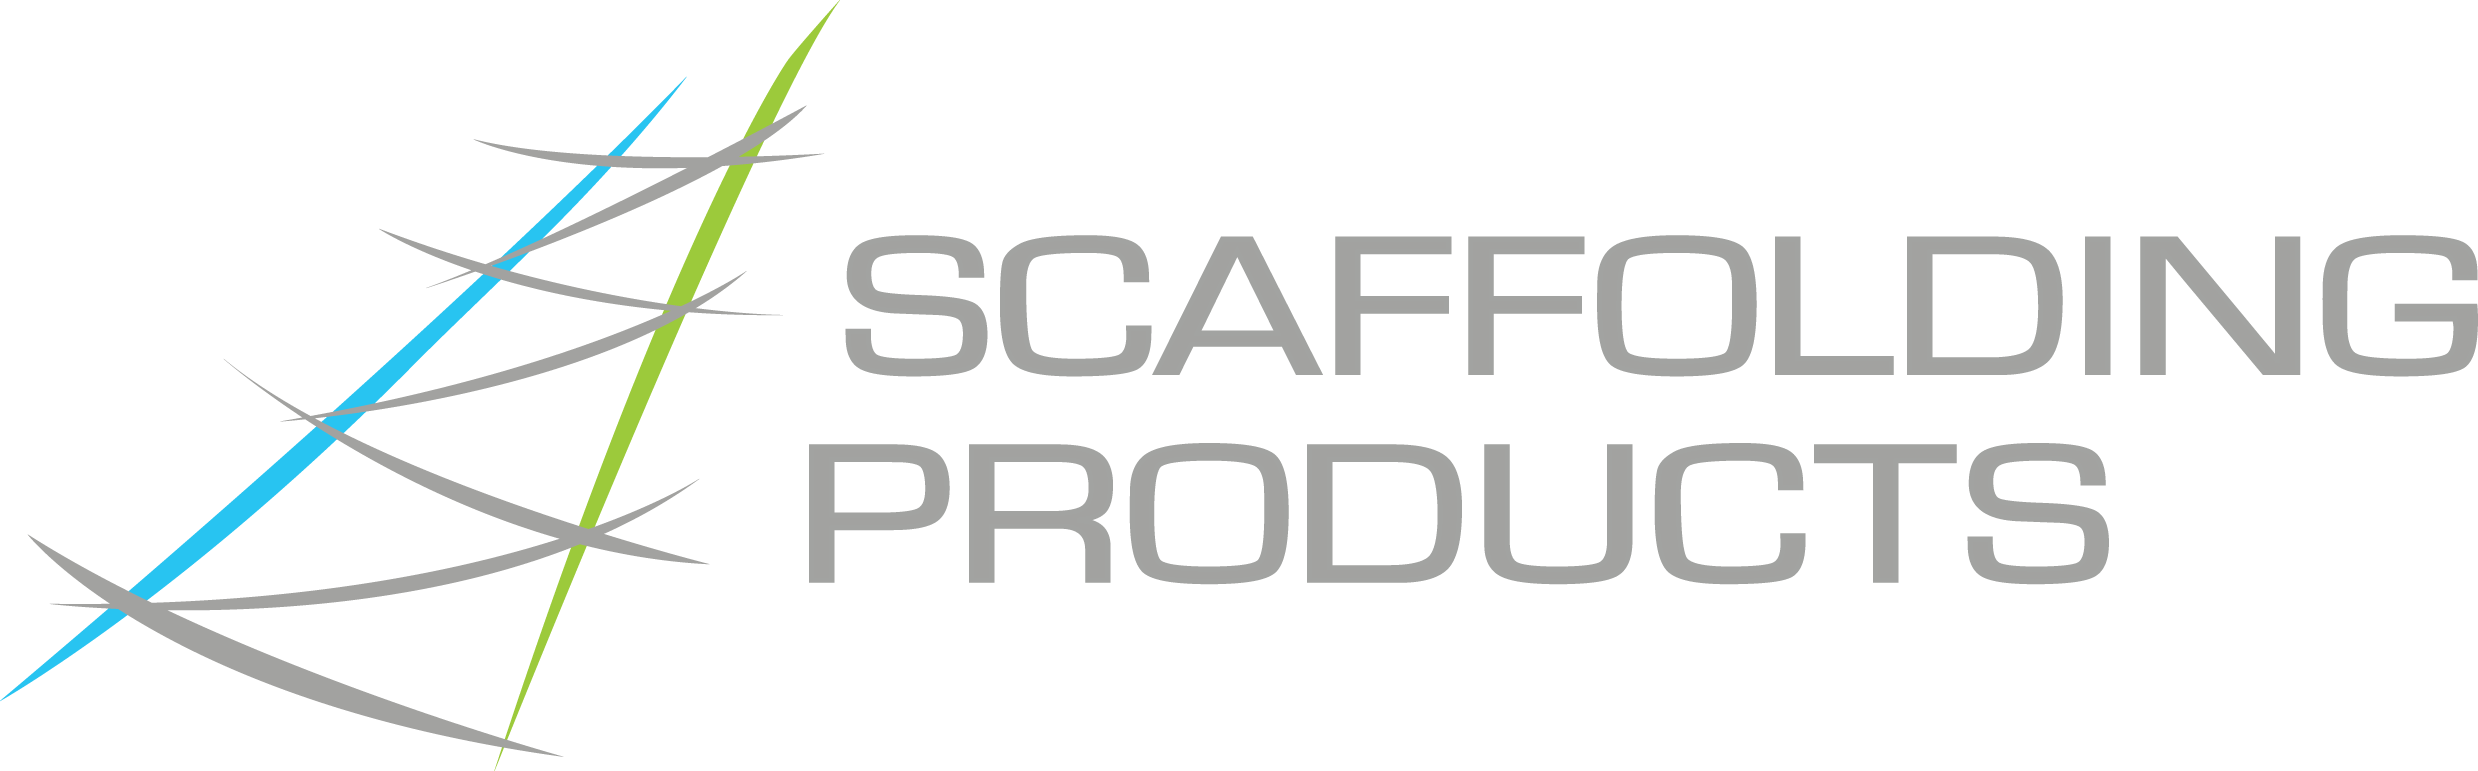 Scaffolding Products – Buy ScaffCorraClamp